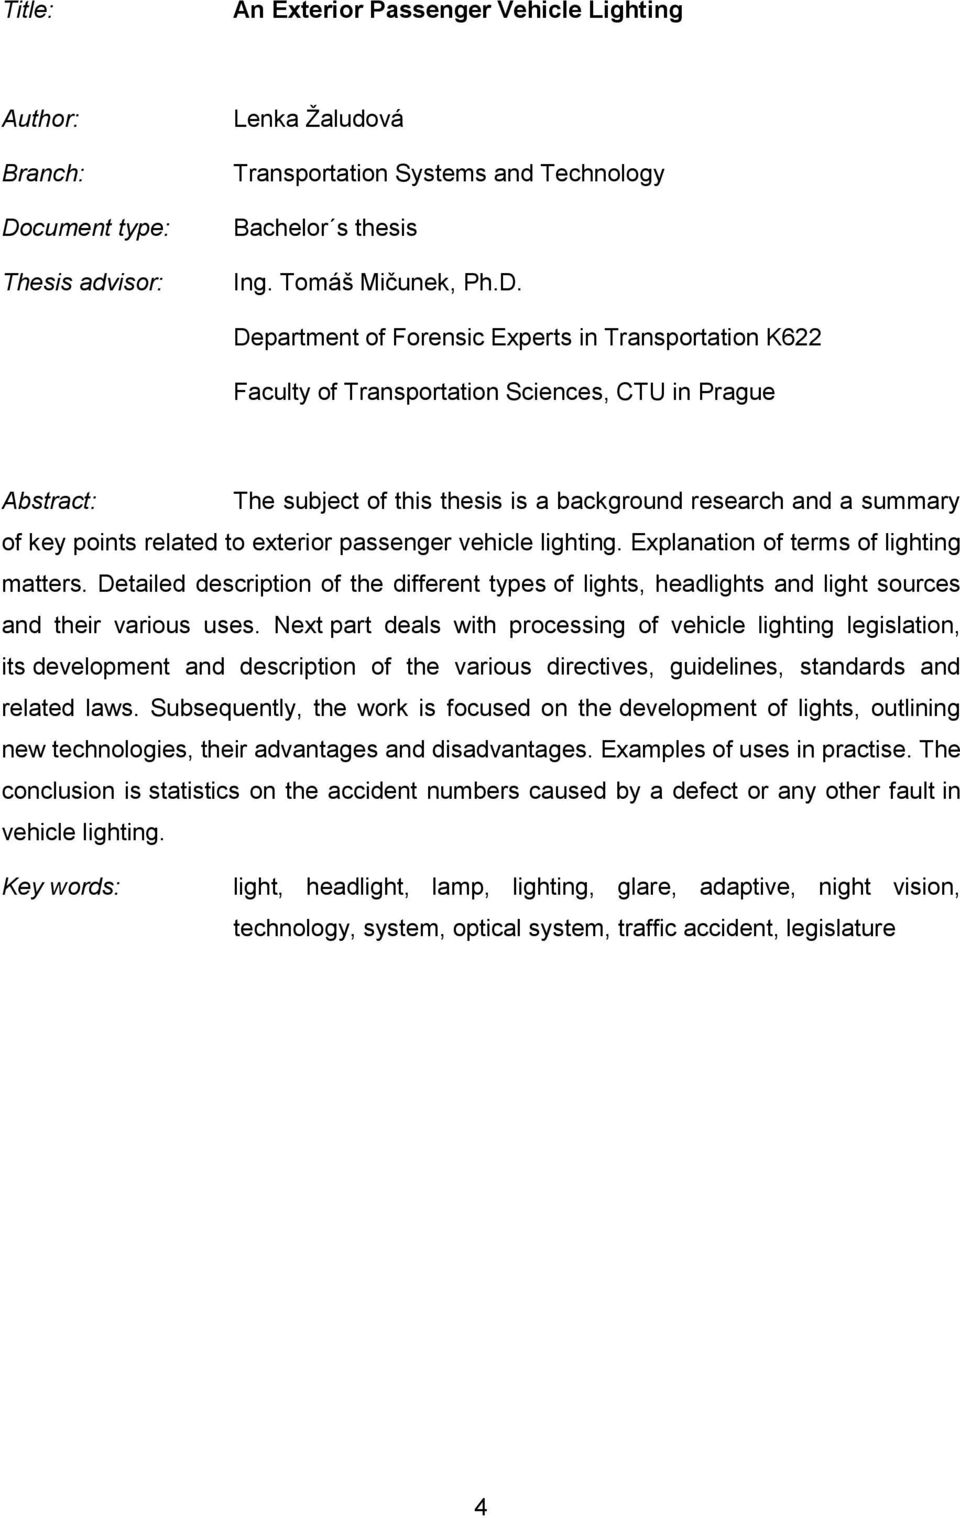 Department of Forensic Experts in Transportation K622 Faculty of Transportation Sciences, CTU in Prague Abstract: The subject of this thesis is a background research and a summary of key points